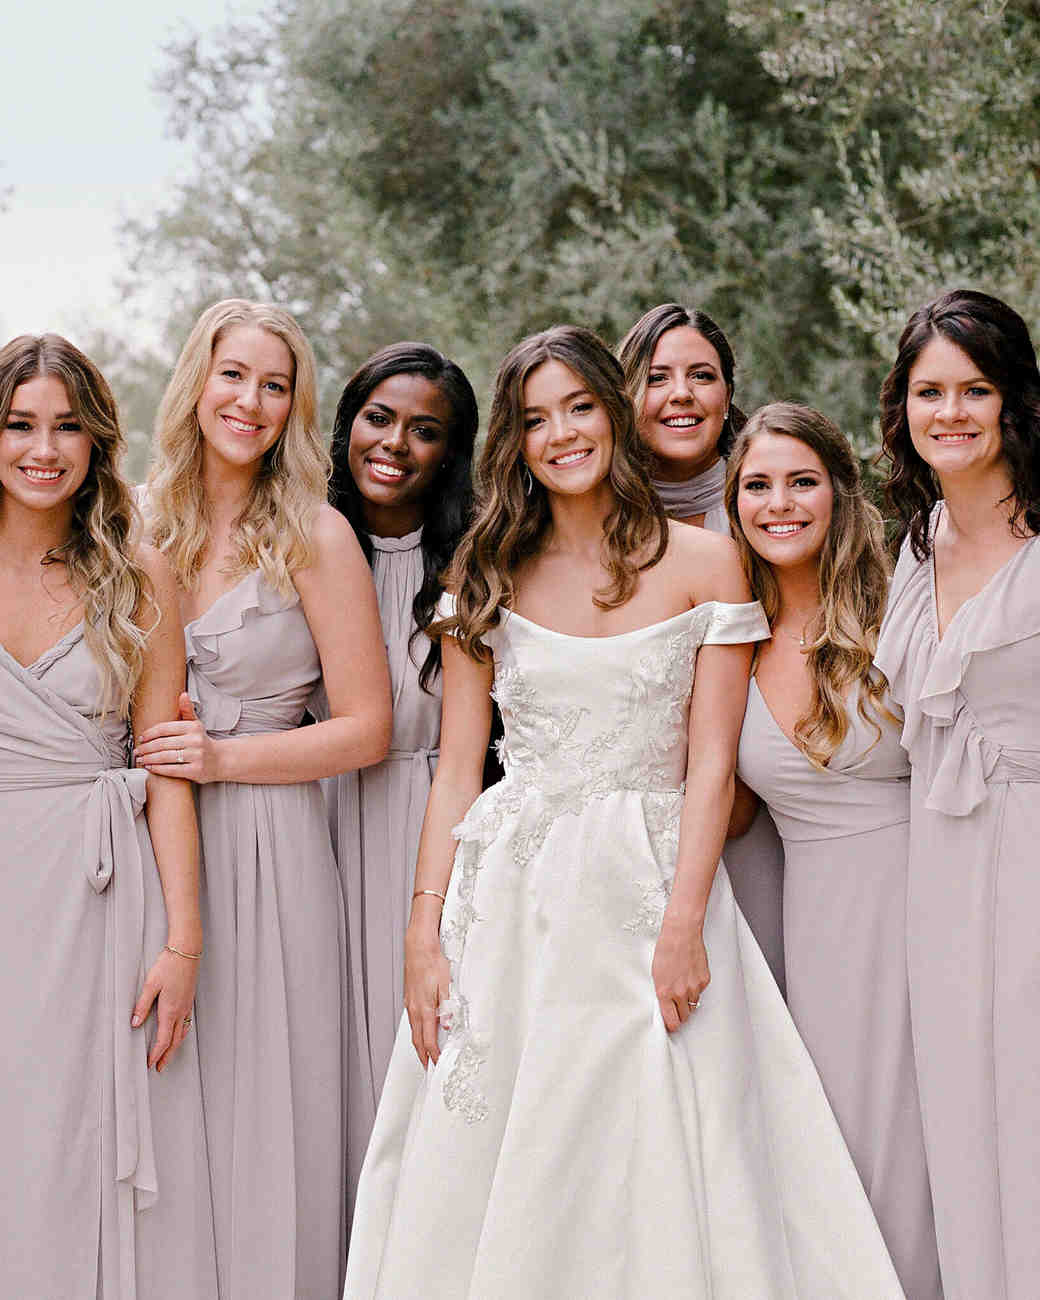 a780f9581e607a kelsey joc wedding santa barbara california bridesmaids aadf2618